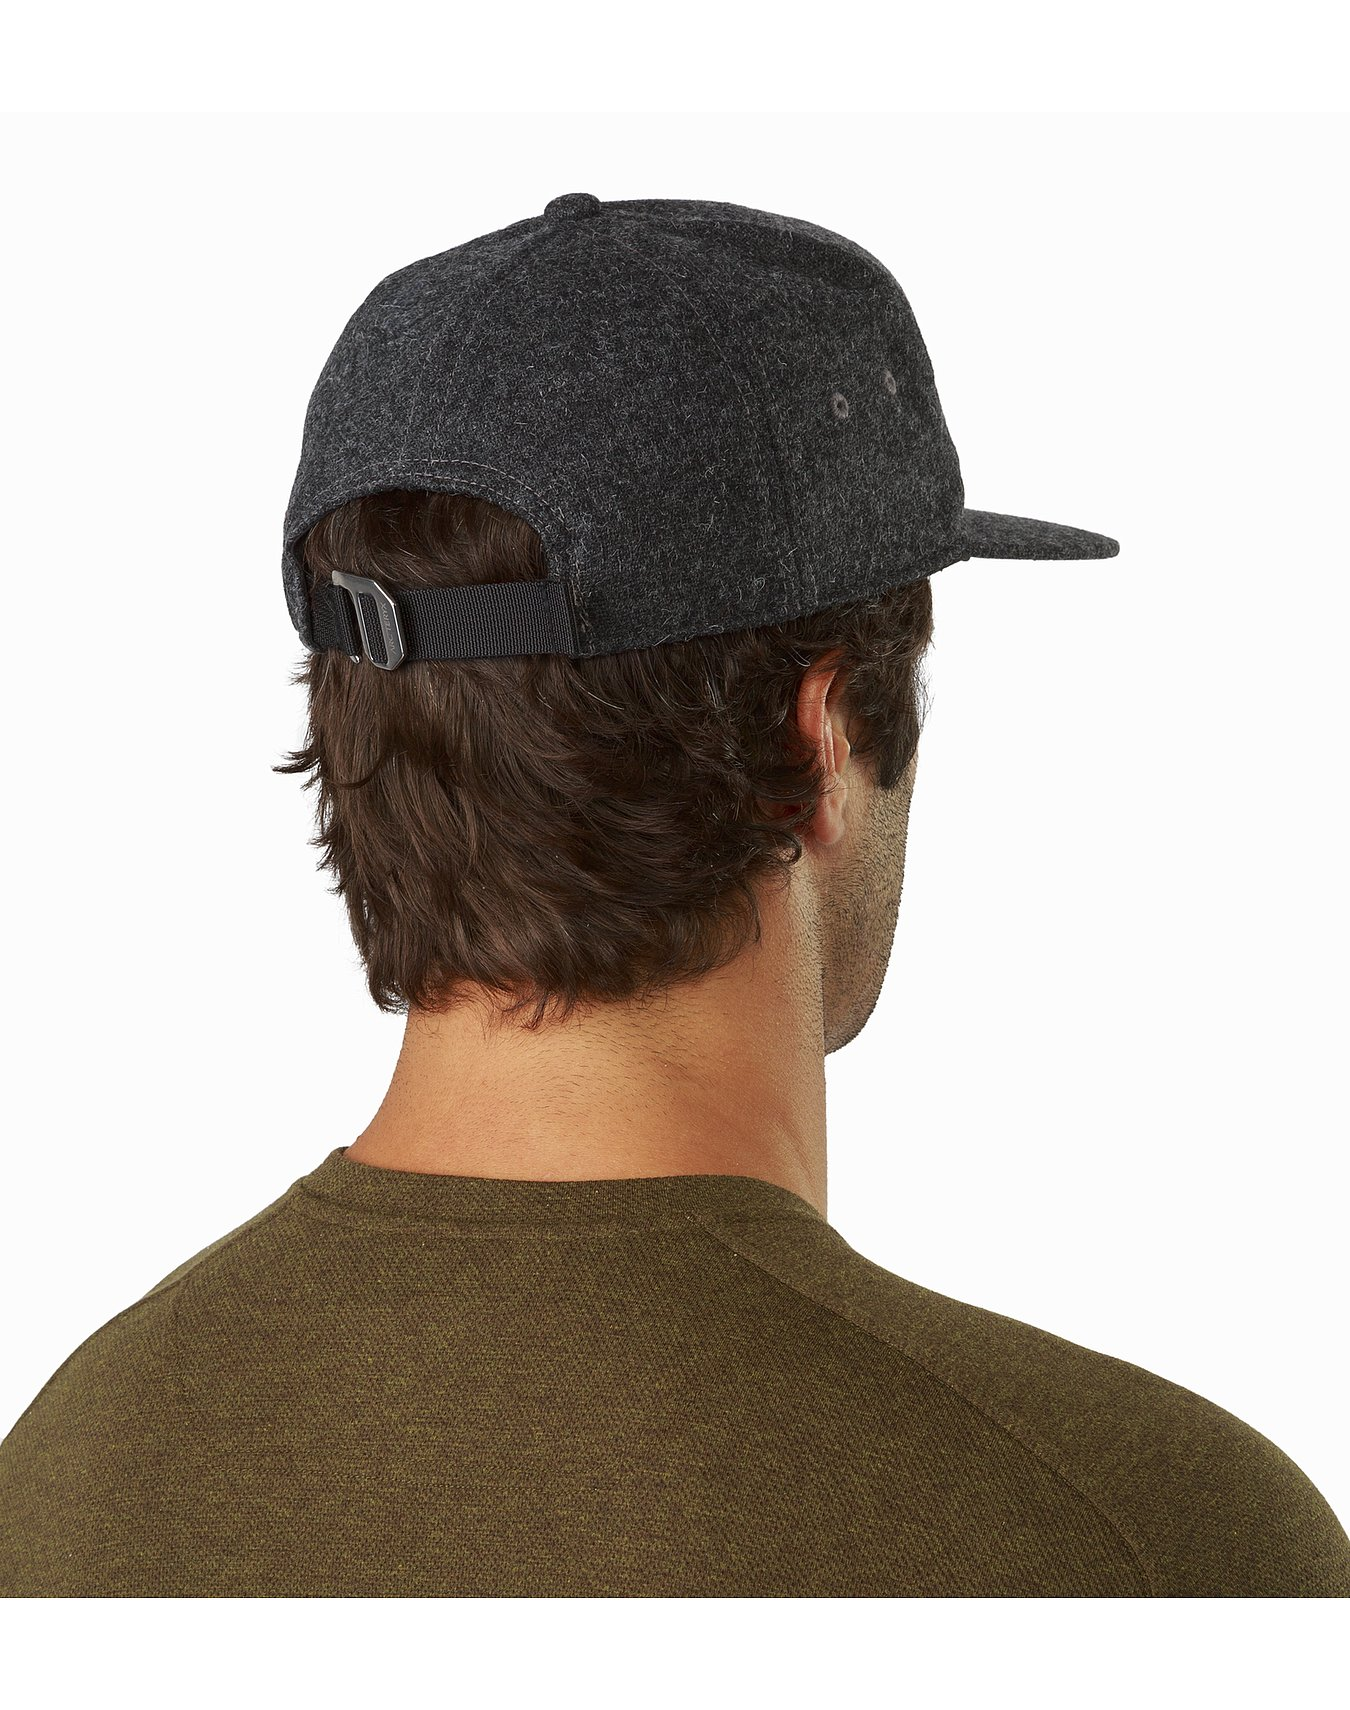 7-Panel-Wool-Ball-Cap-Heather-Grey-Back-View.jpg